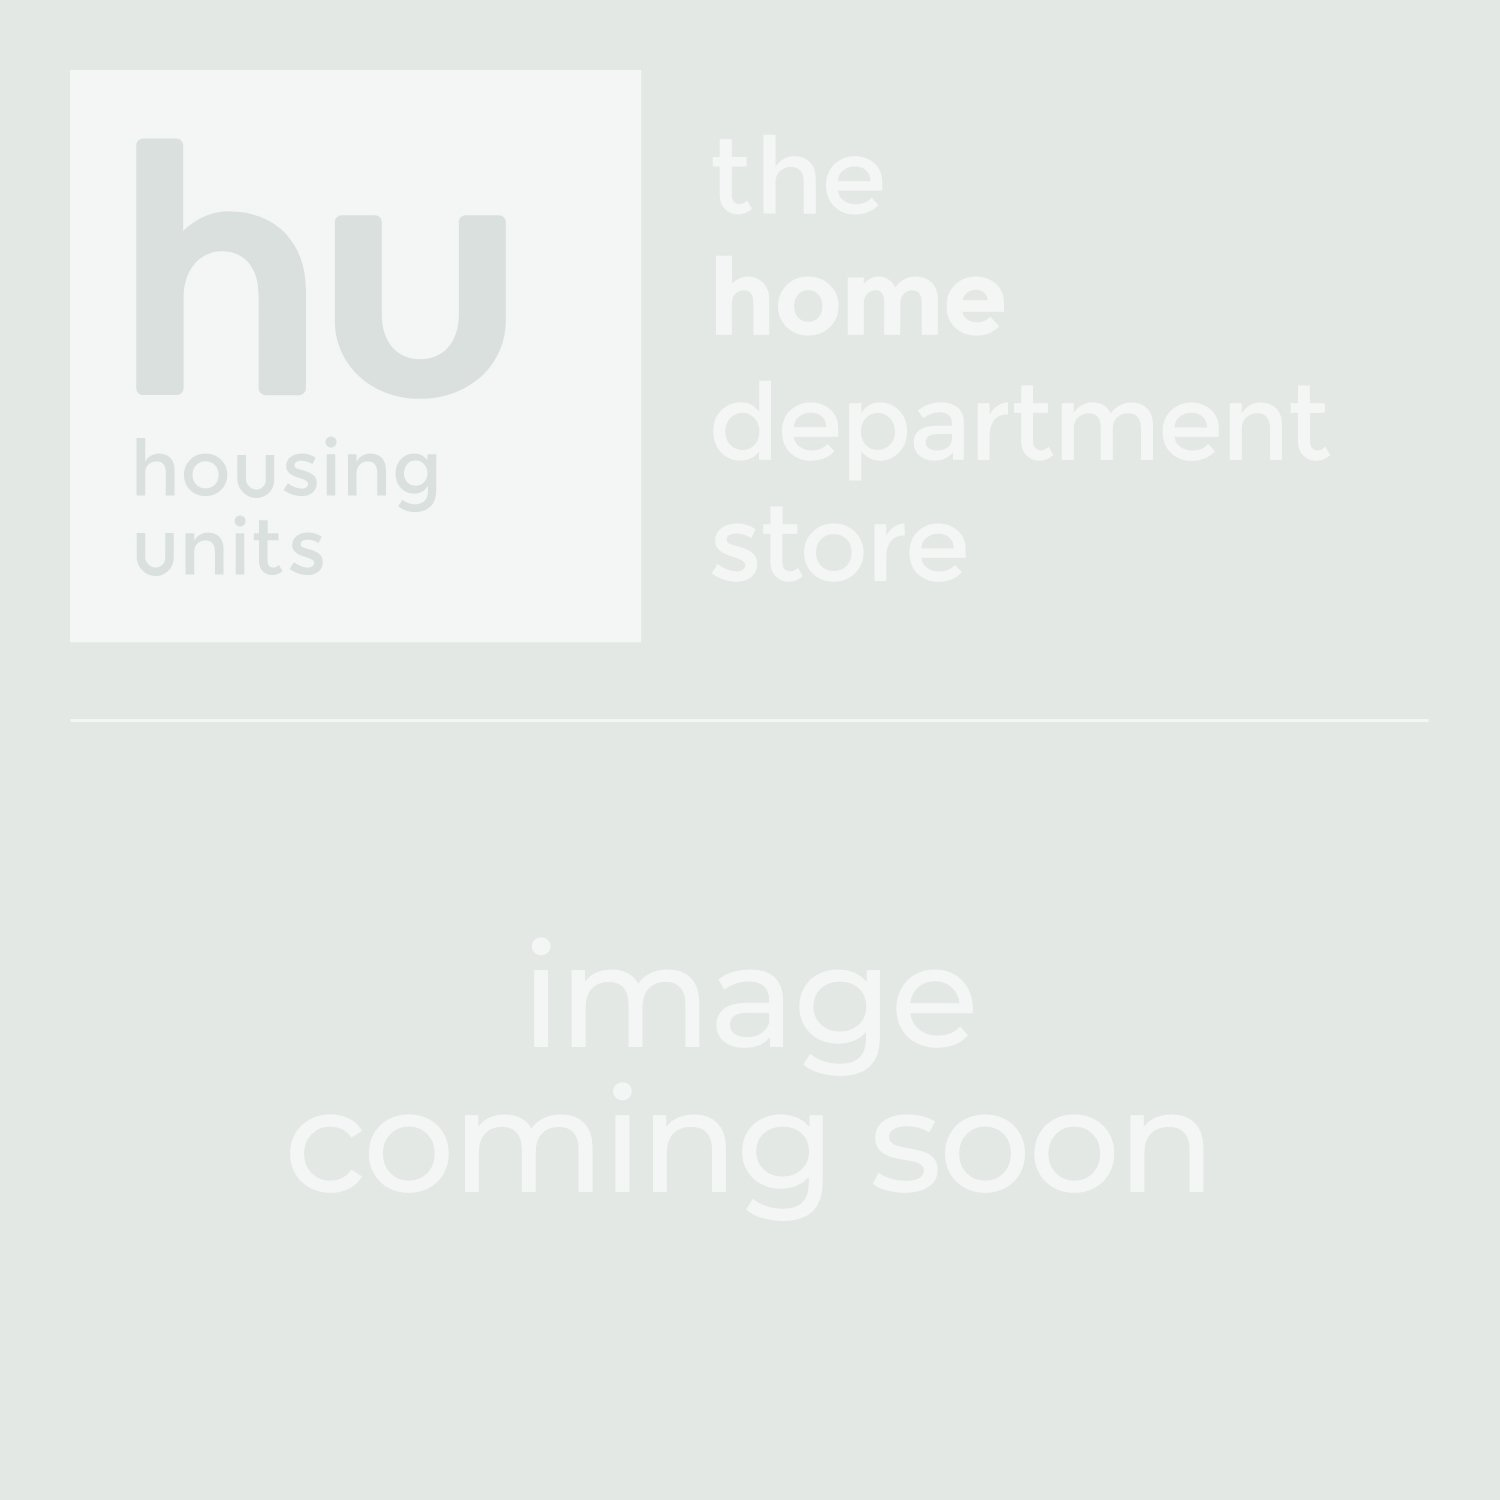 Celine Crystal & Chrome 2 Light Wall Light | Housing Units